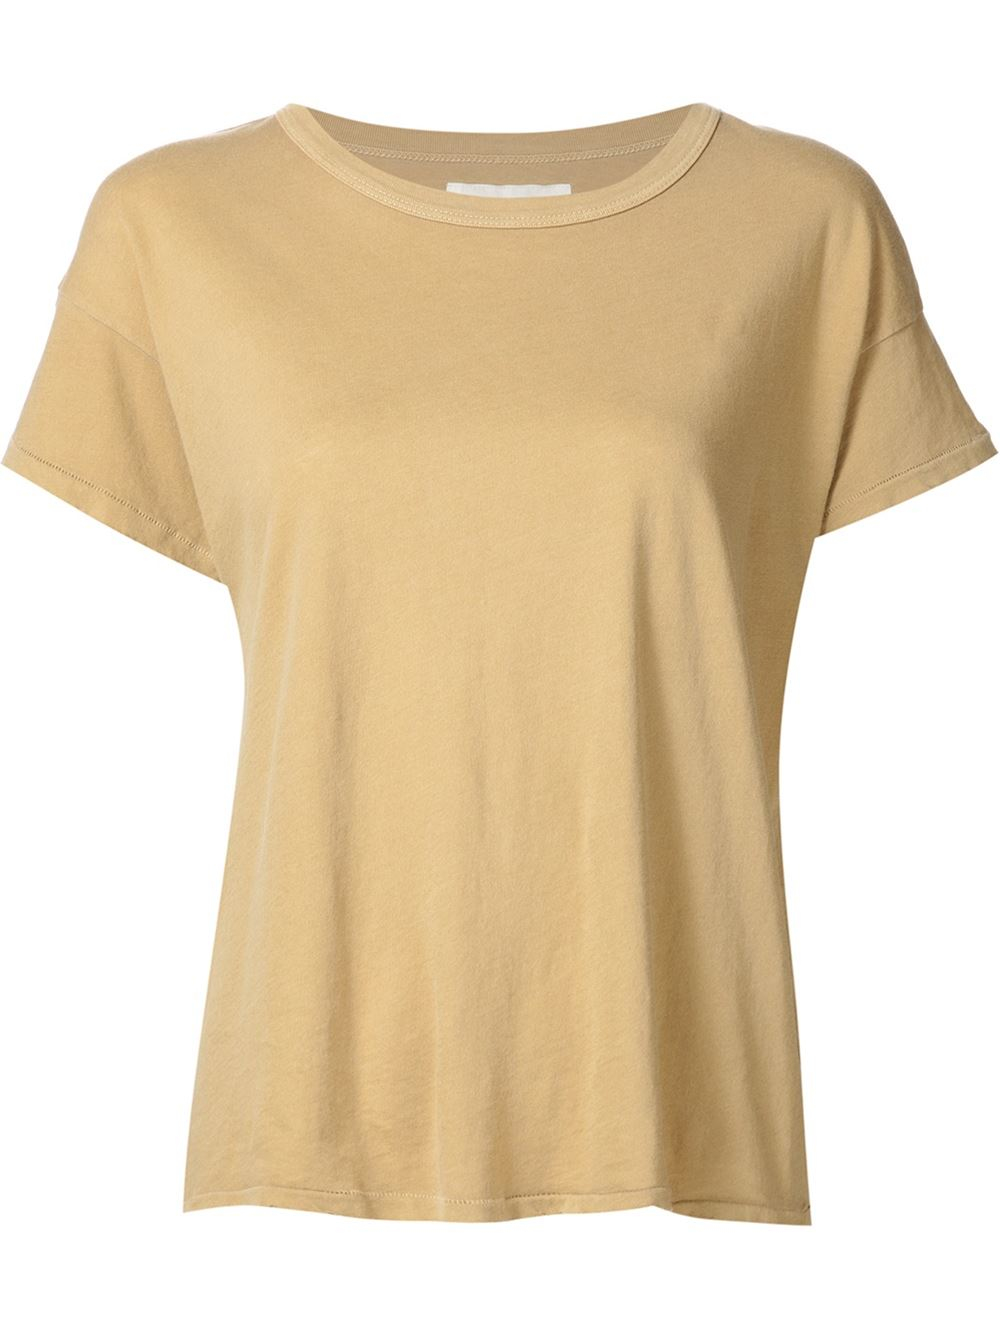 Lyst the great classic t shirt in natural The great t shirt